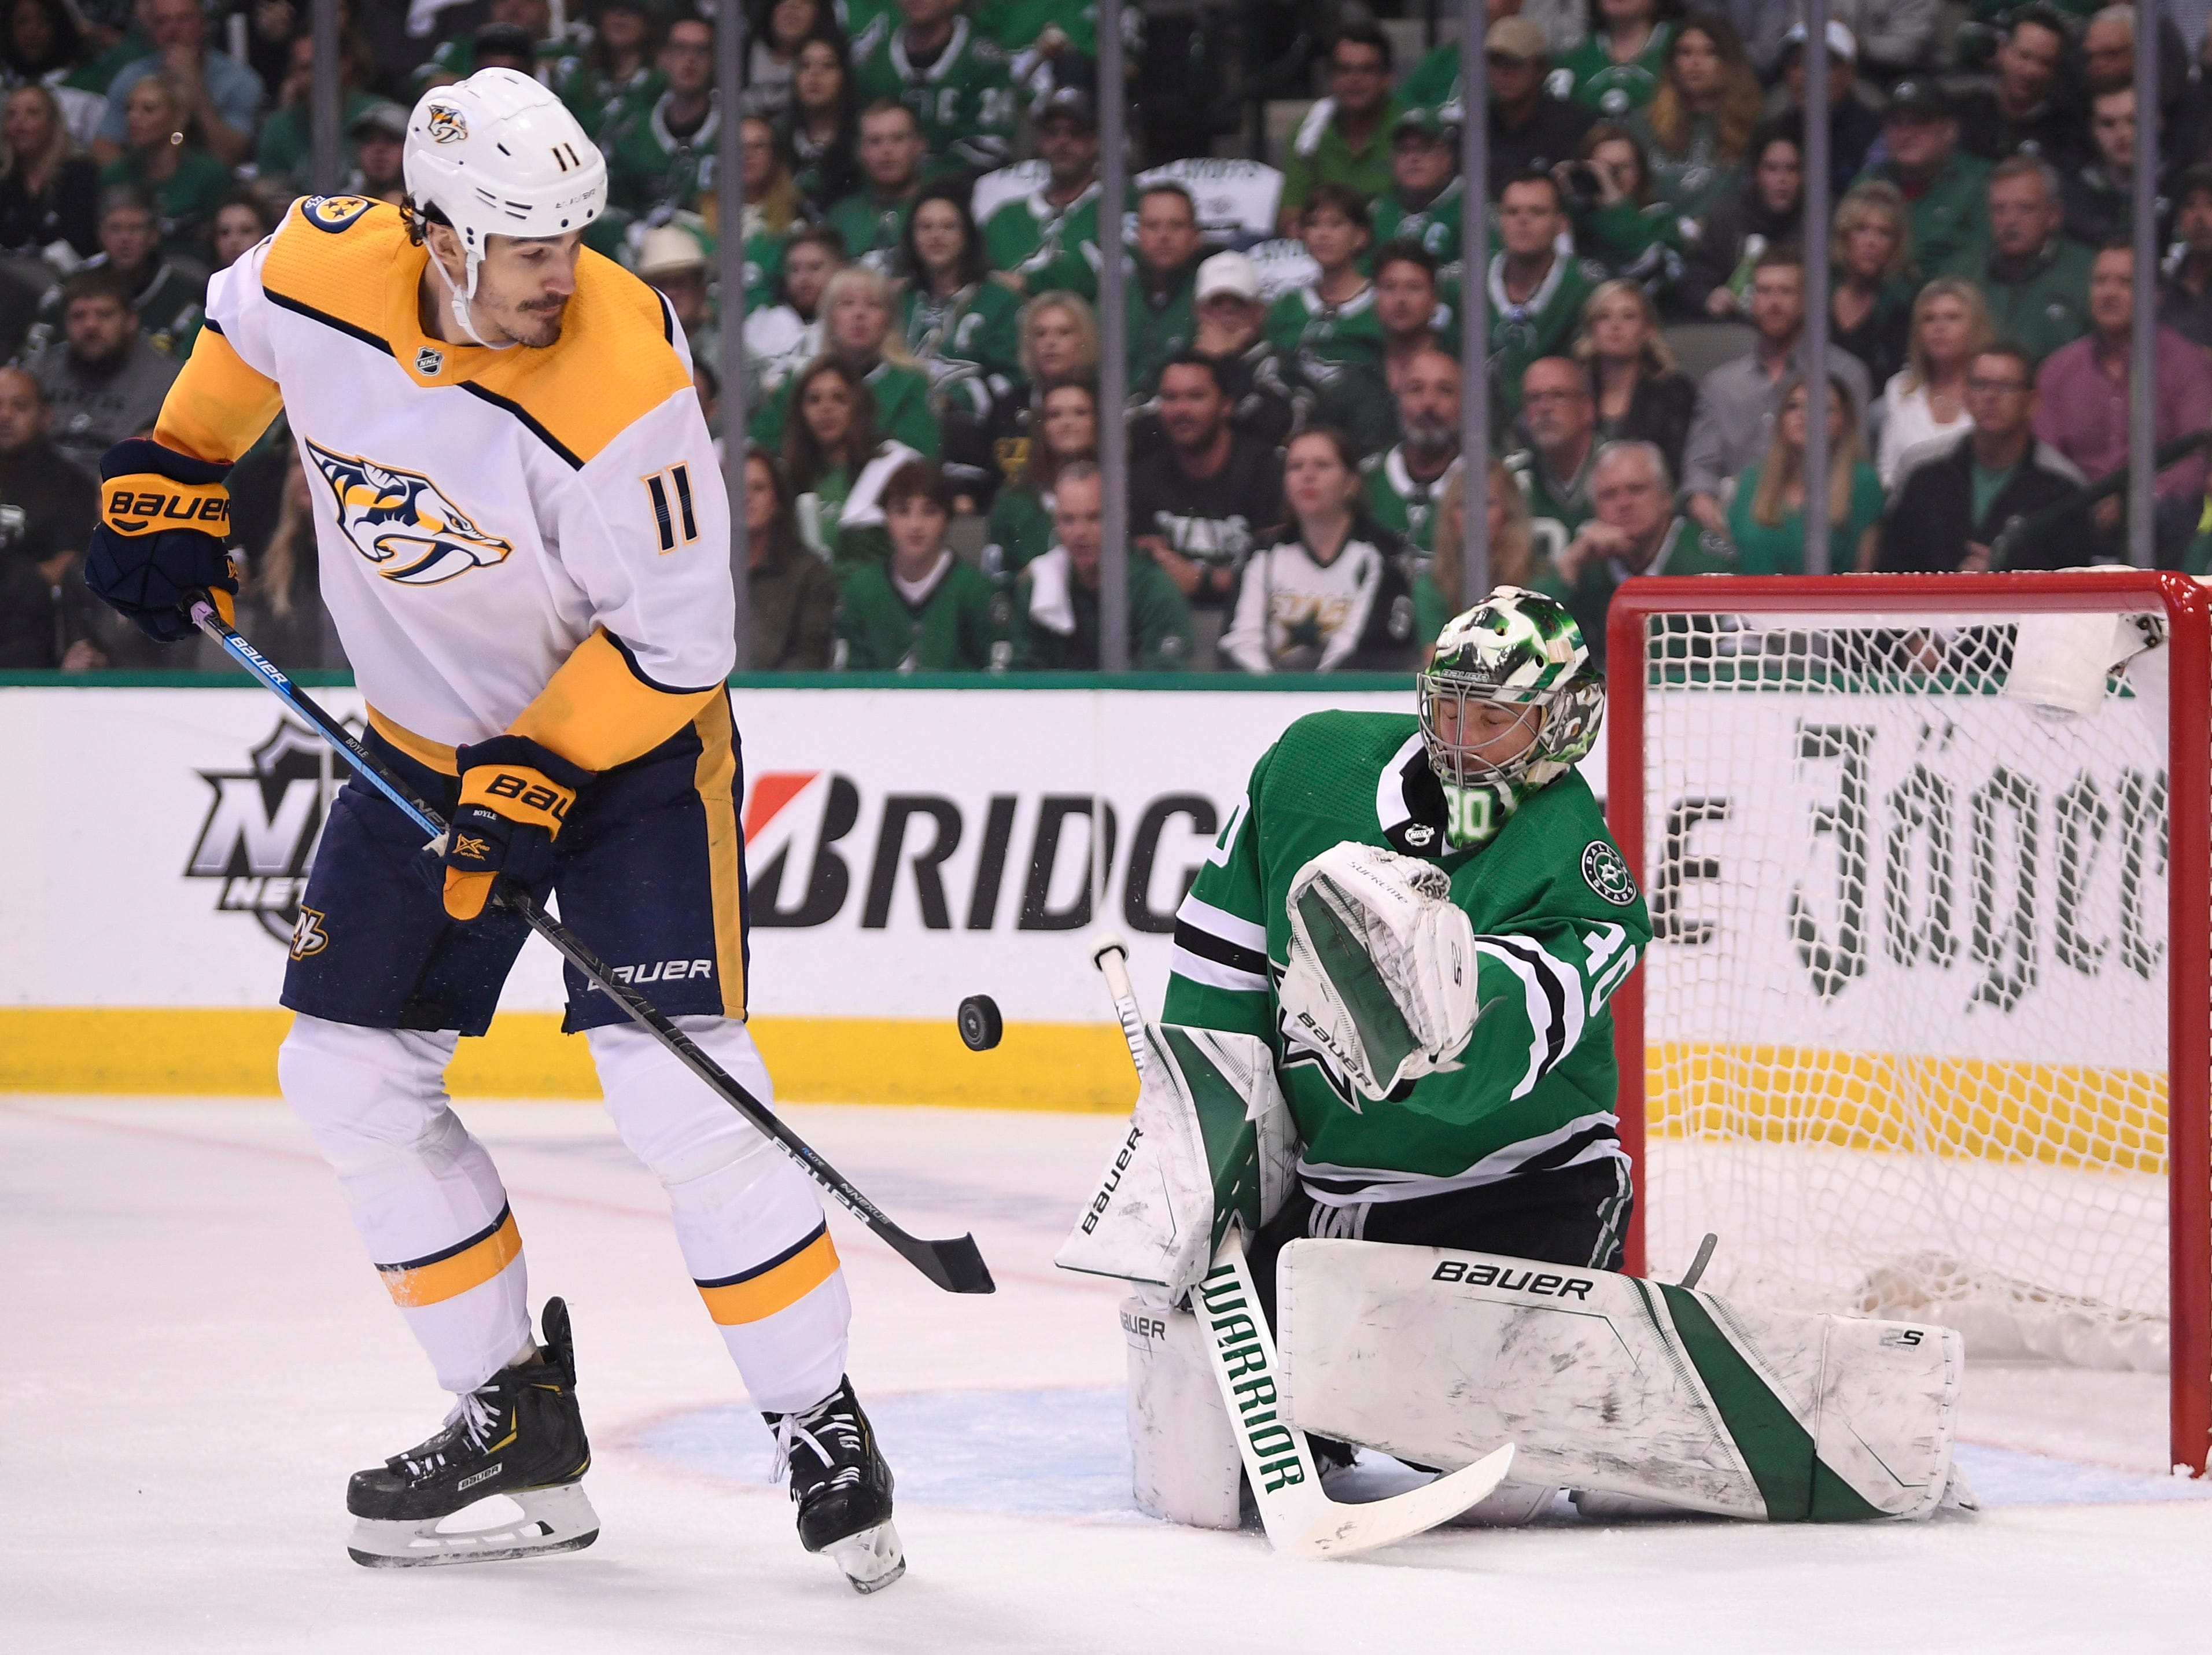 Dallas Stars goaltender Ben Bishop (30) defends against Nashville Predators center Brian Boyle (11) during the first period of the divisional semifinal game at the American Airlines Center in Dallas, Texas, Monday, April 22, 2019.